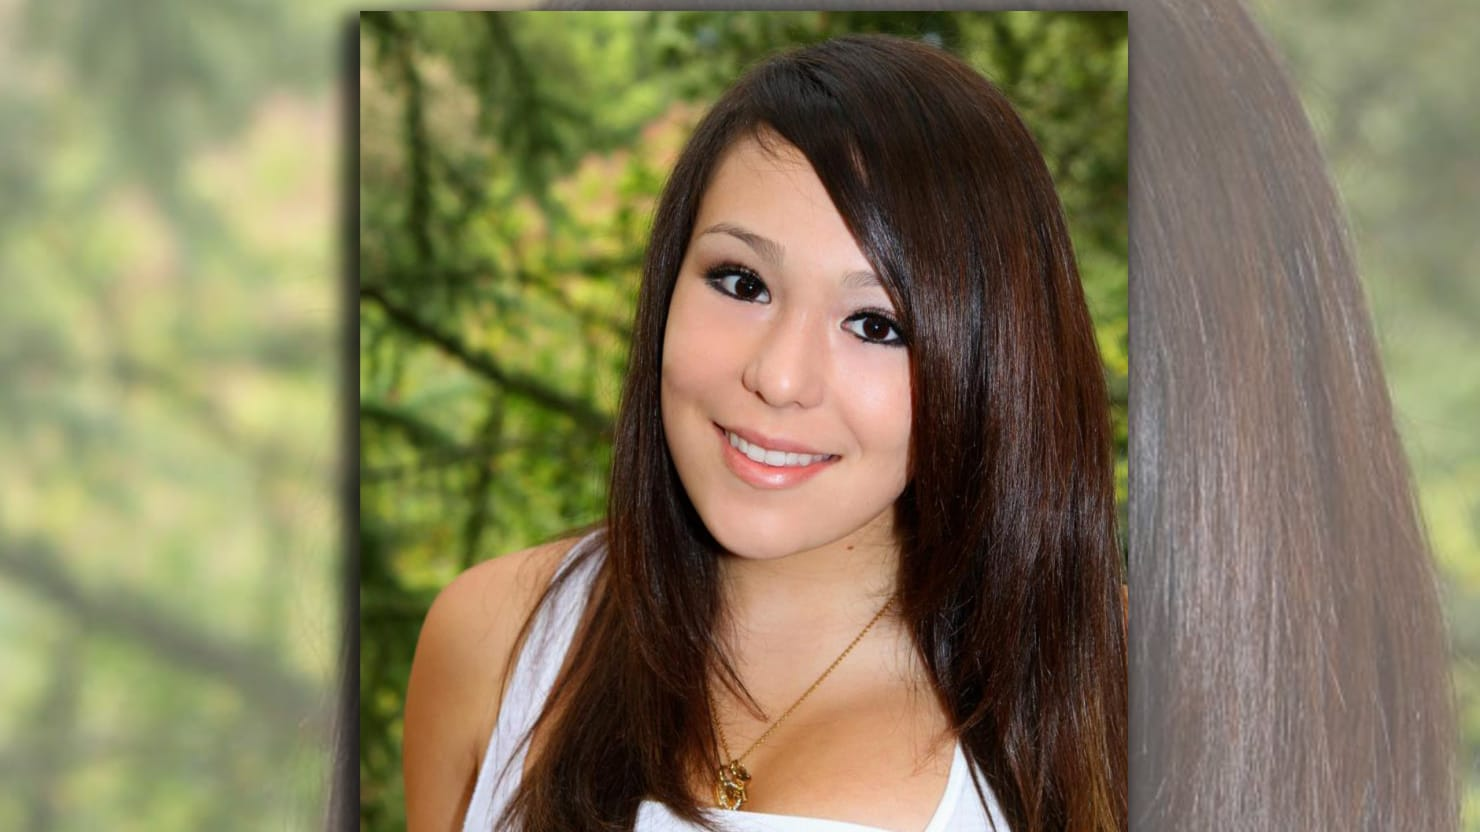 Audrie Pott Suicide: Dead After Inauguration Day